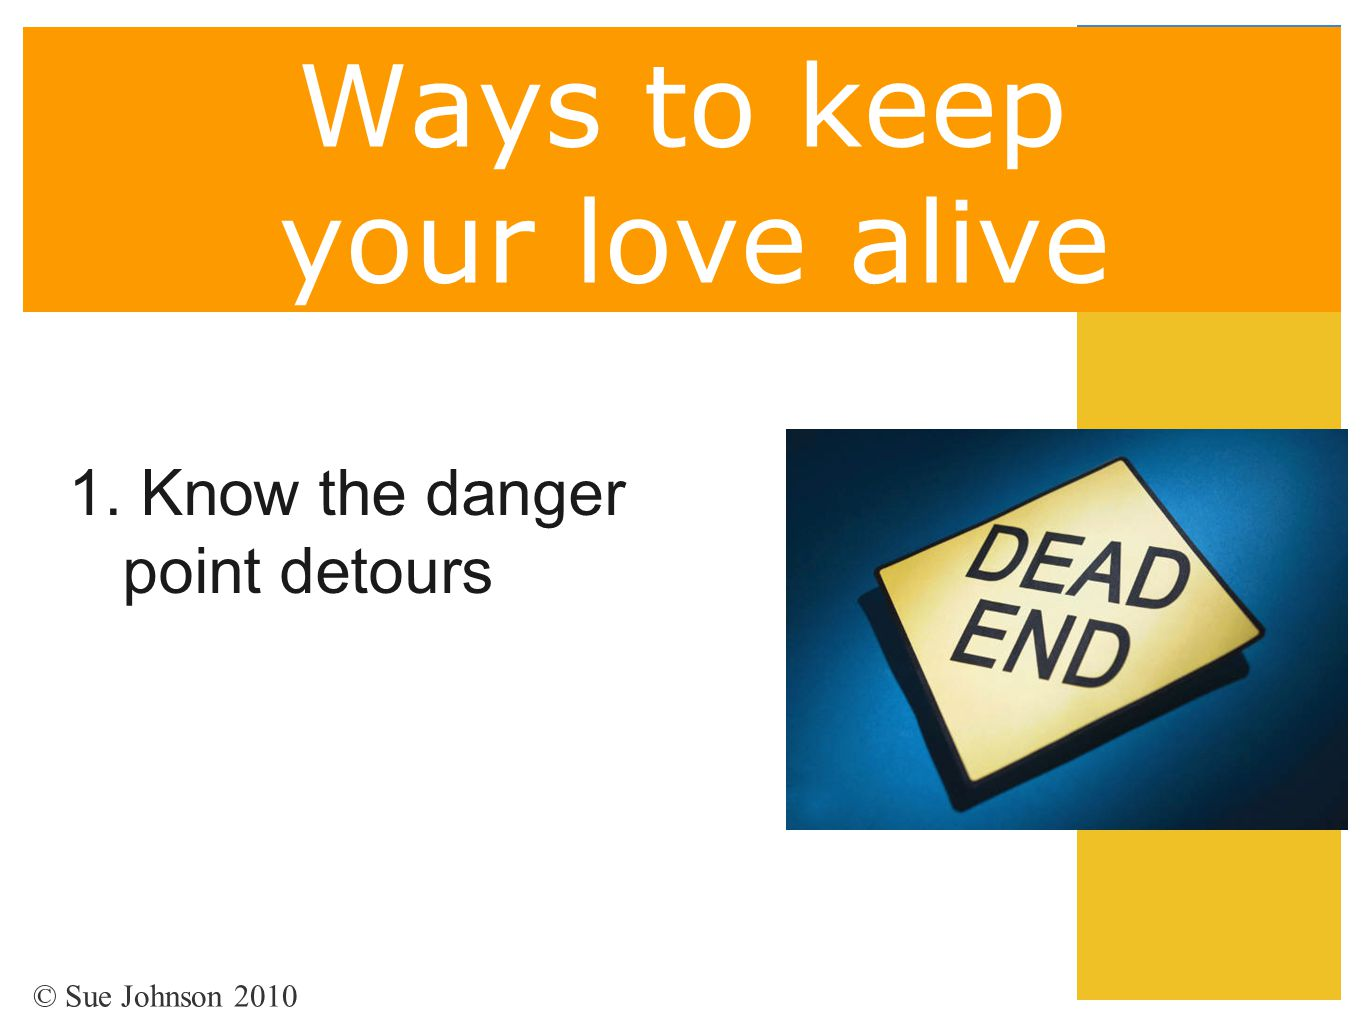 Ways to keep your love alive